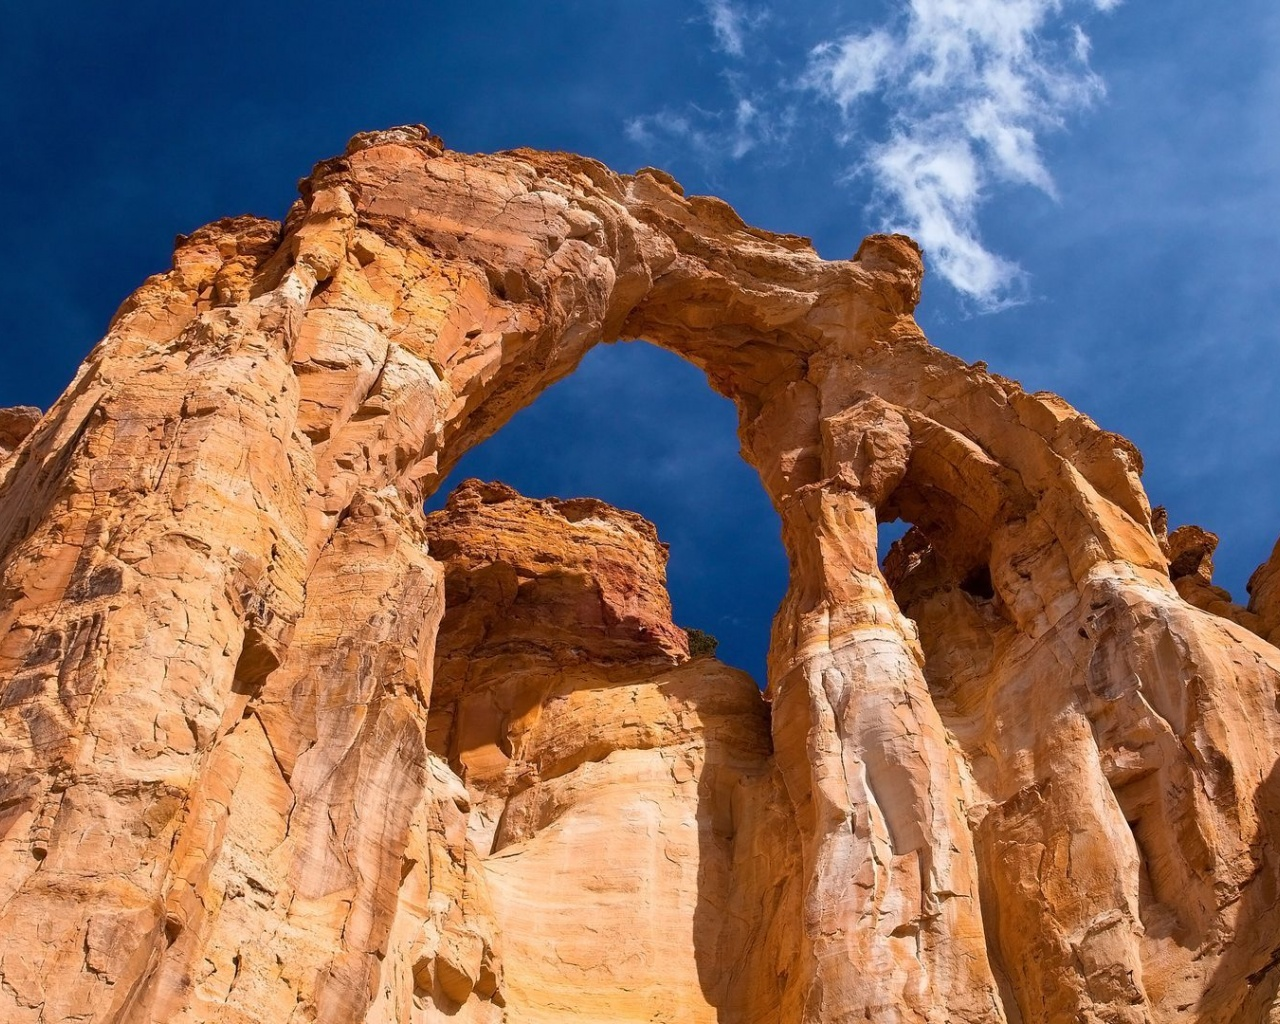 1280x1024 Grosvenor Arch, Utah, grand staircase-escalante, national monument, usa, nature